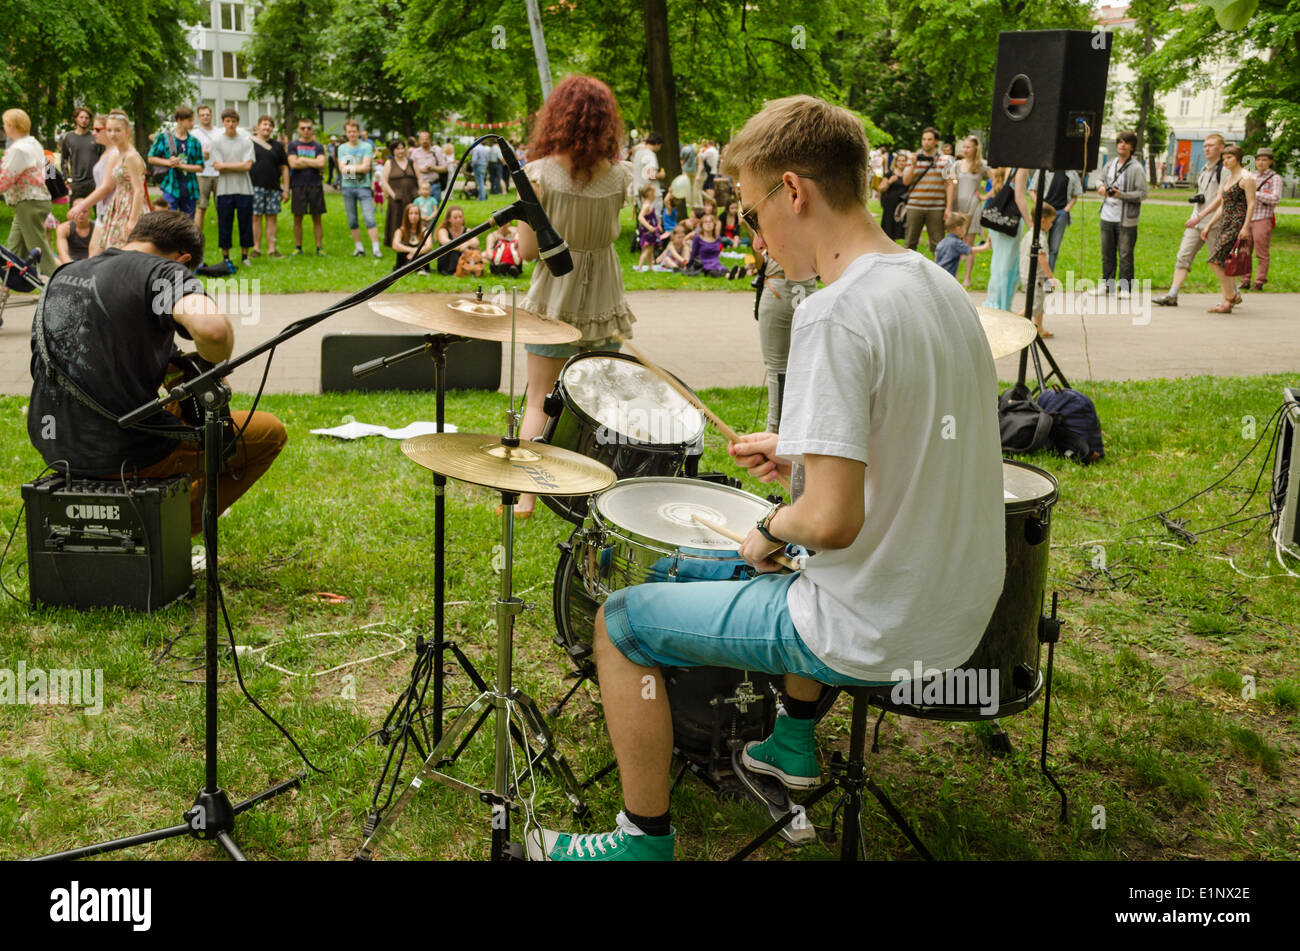 guy plays drums with friend music group for people - Stock Image